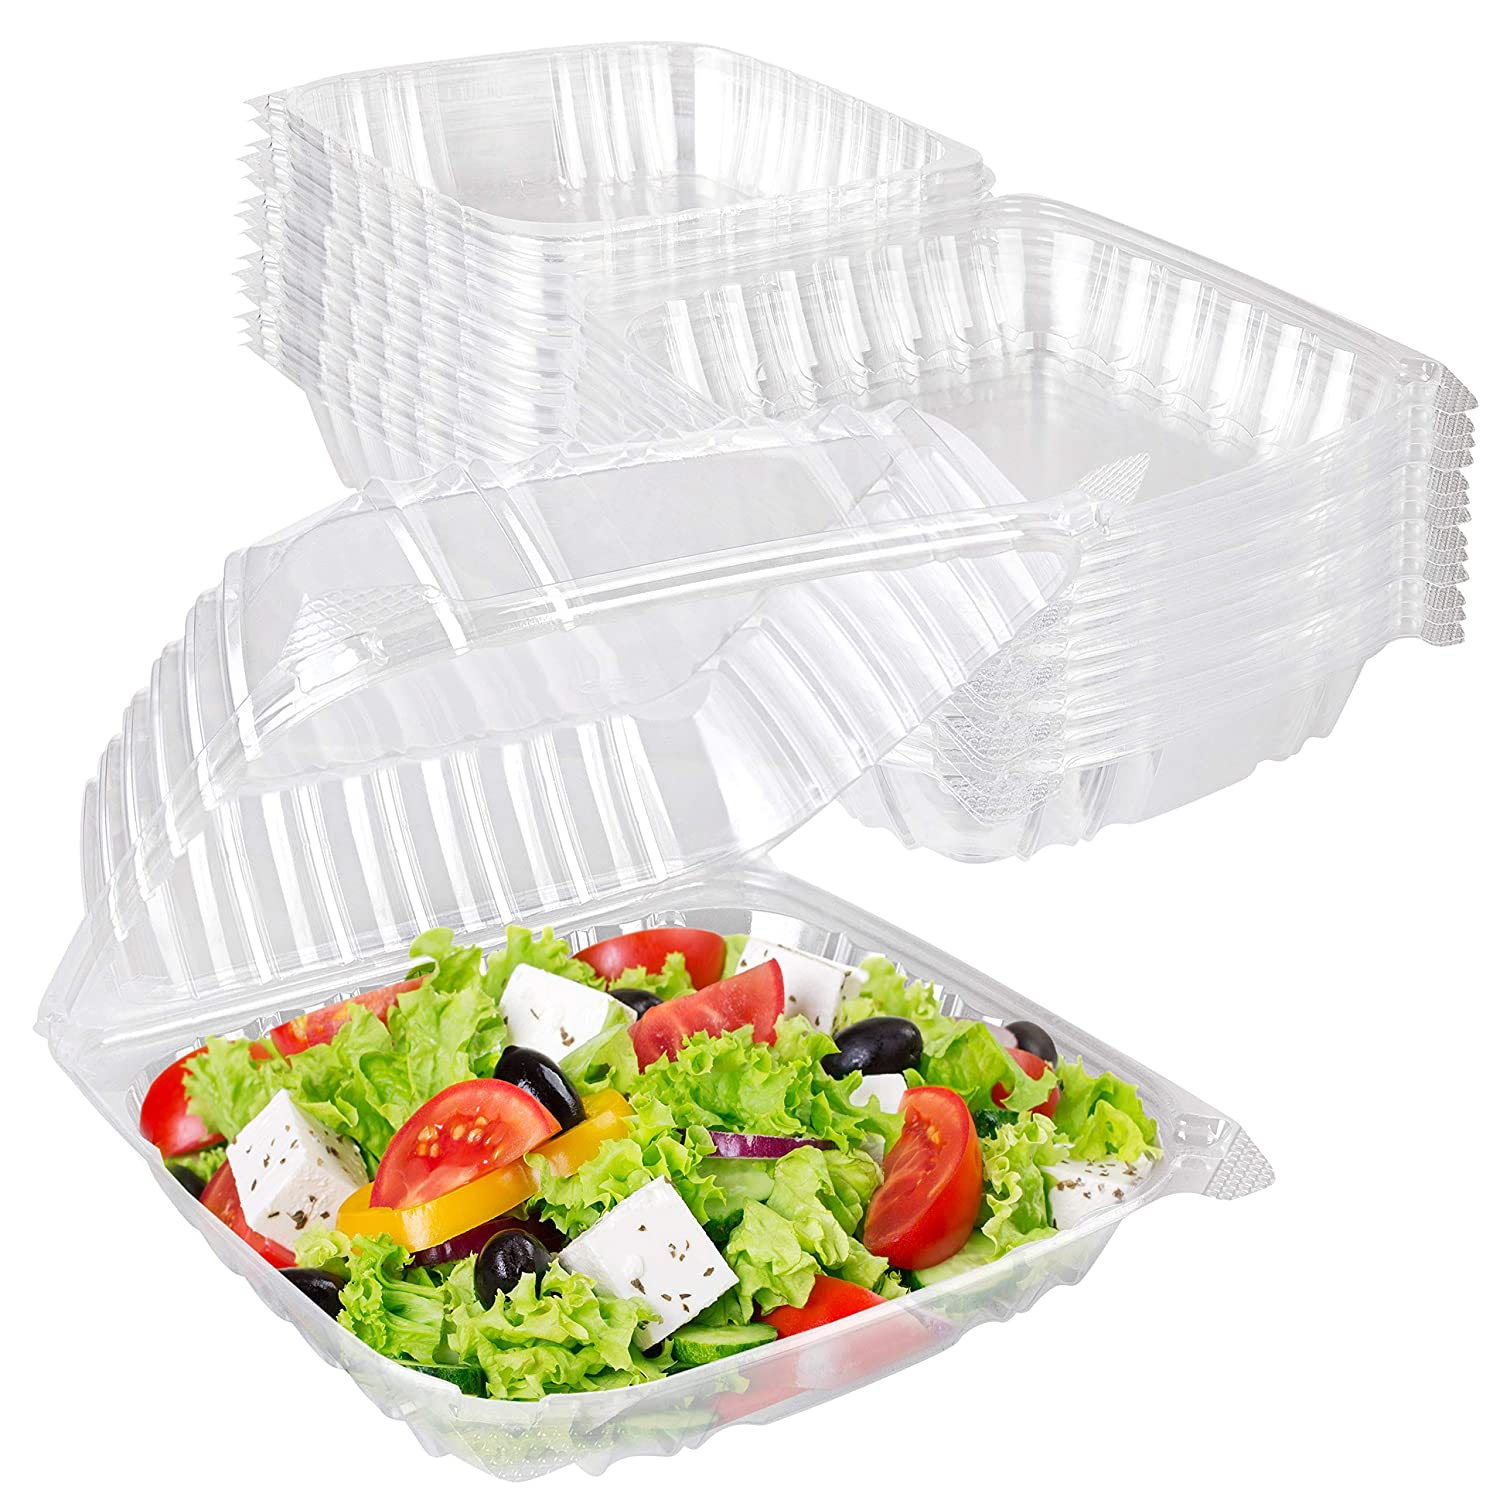 Stock Your Home Plastic 8 x 8 Inch Clamshell Takeout Tray (25 Count) - Dessert Containers - Plastic Hinged Food Container - Disposable Plastic Clamshell Food Containers for Salads, Pasta, Sandwiches